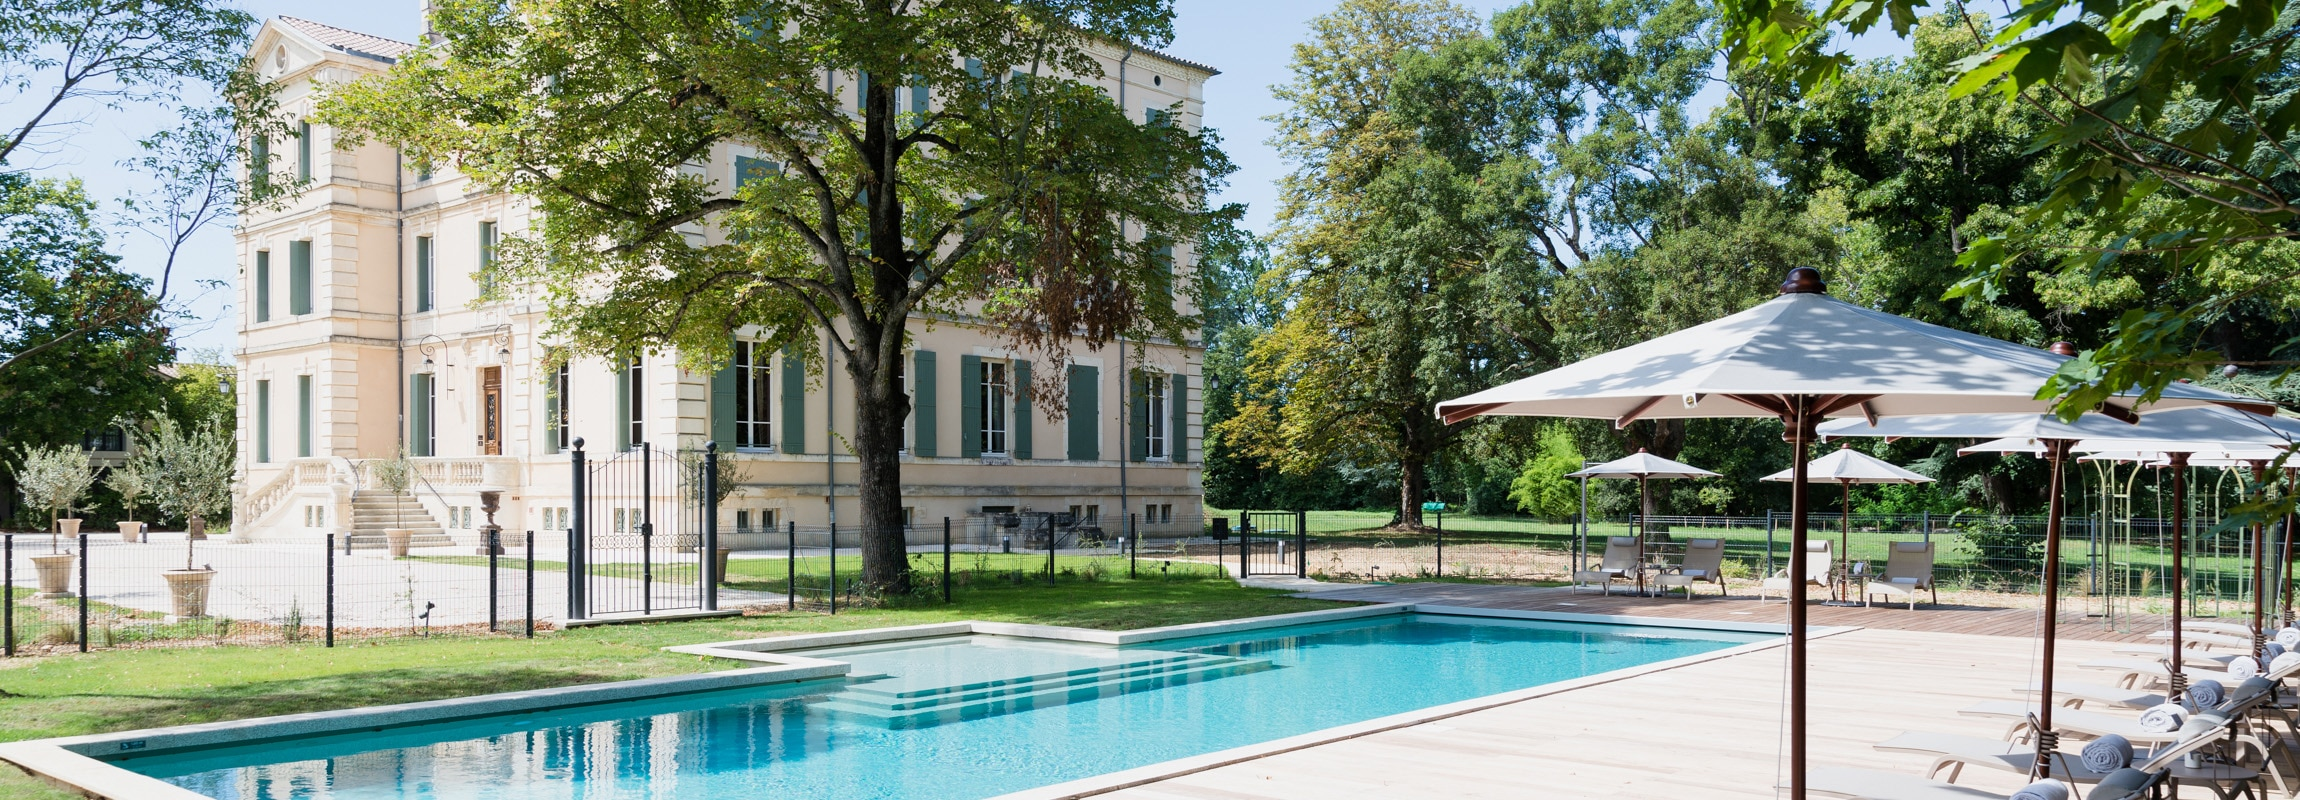 Swimming-pool at Château de Montcaud